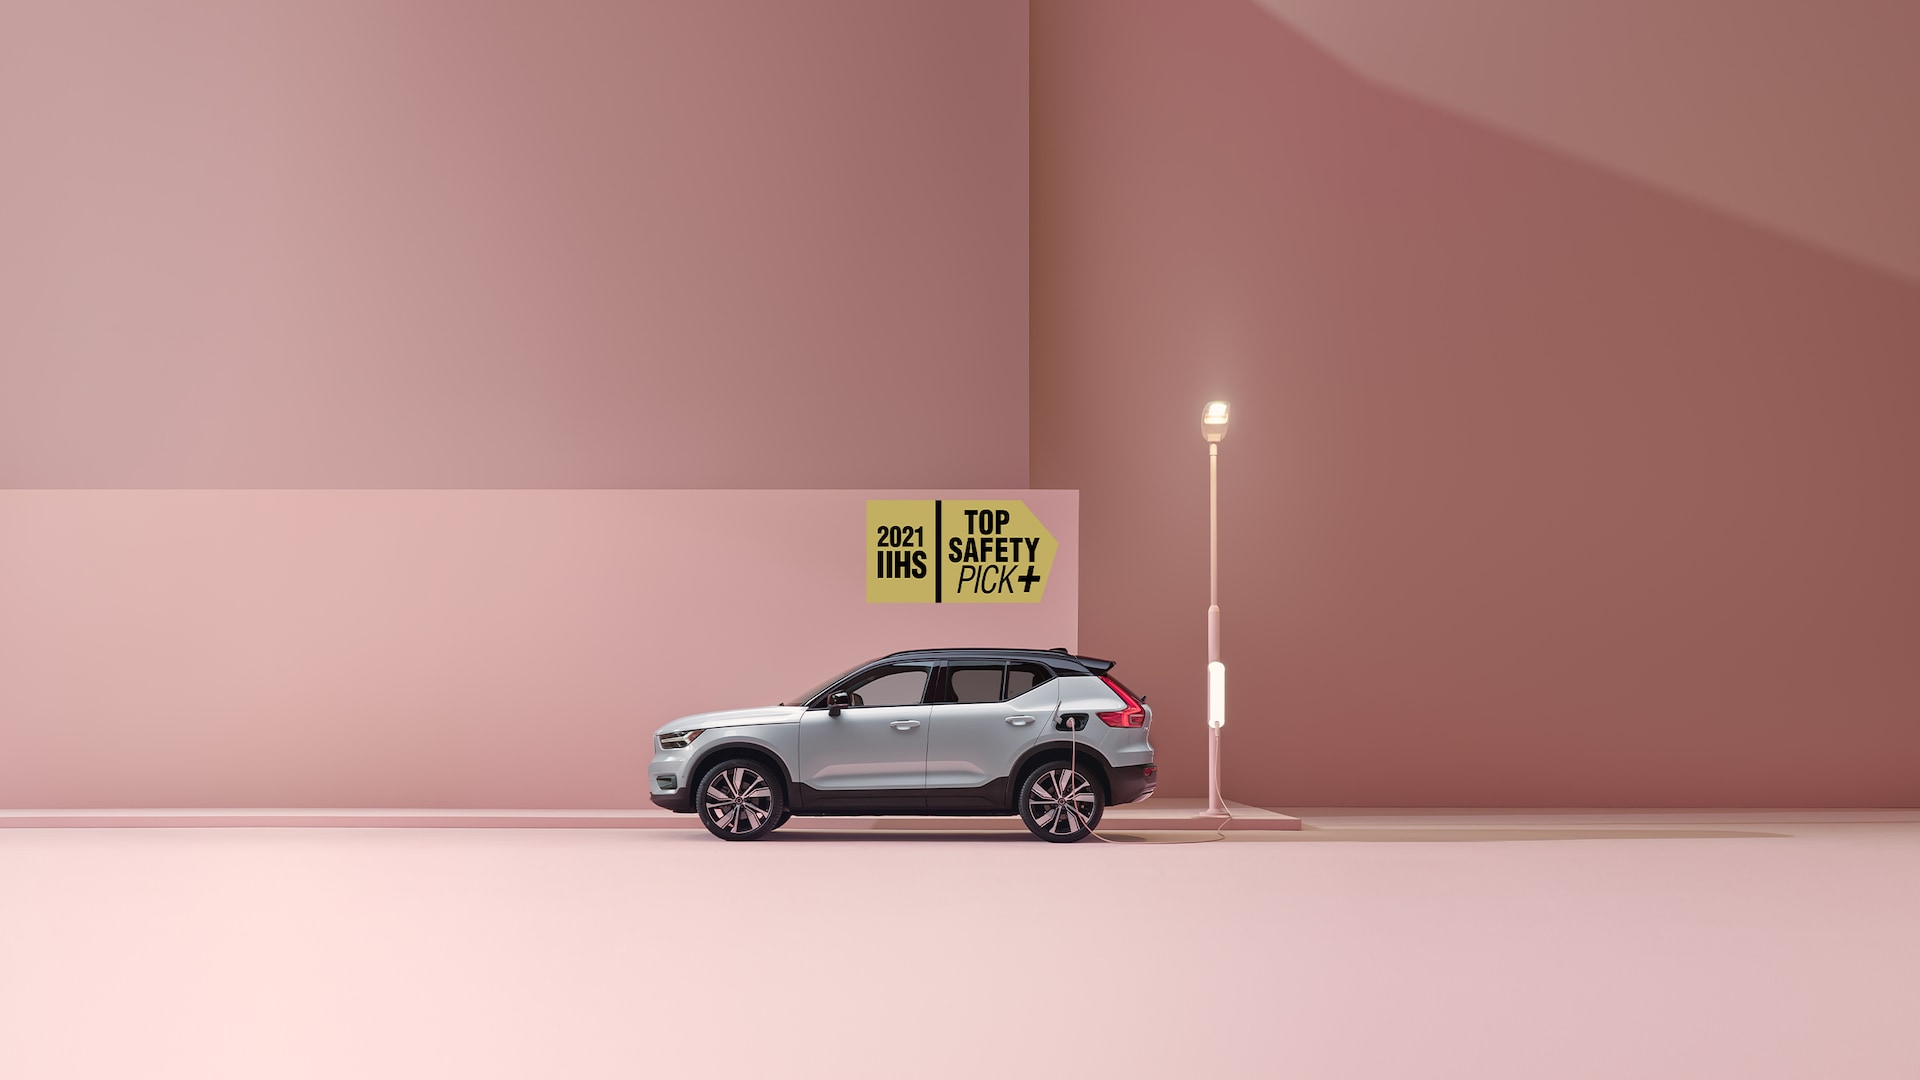 A white Volvo XC40 Recharge electric SUV charged in a pink city